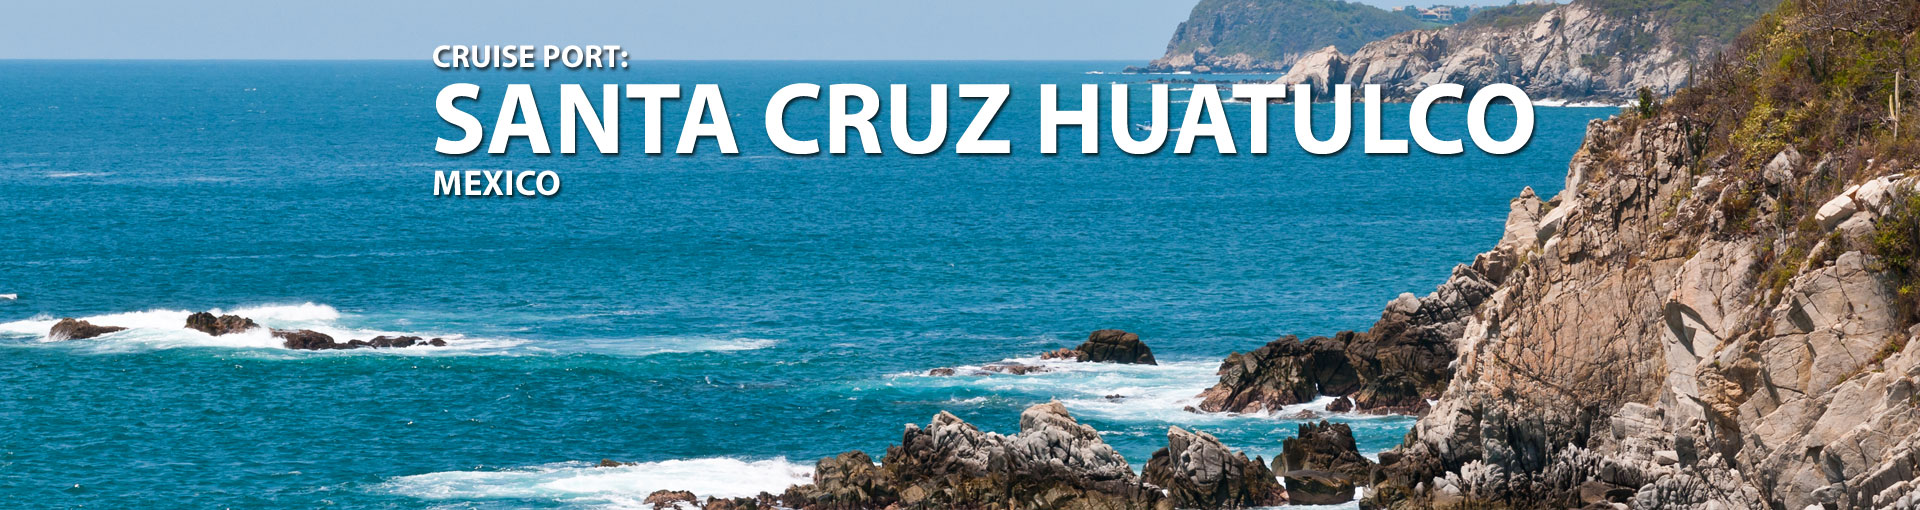 Cruises to Santa Cruz Huatulco, Mexico